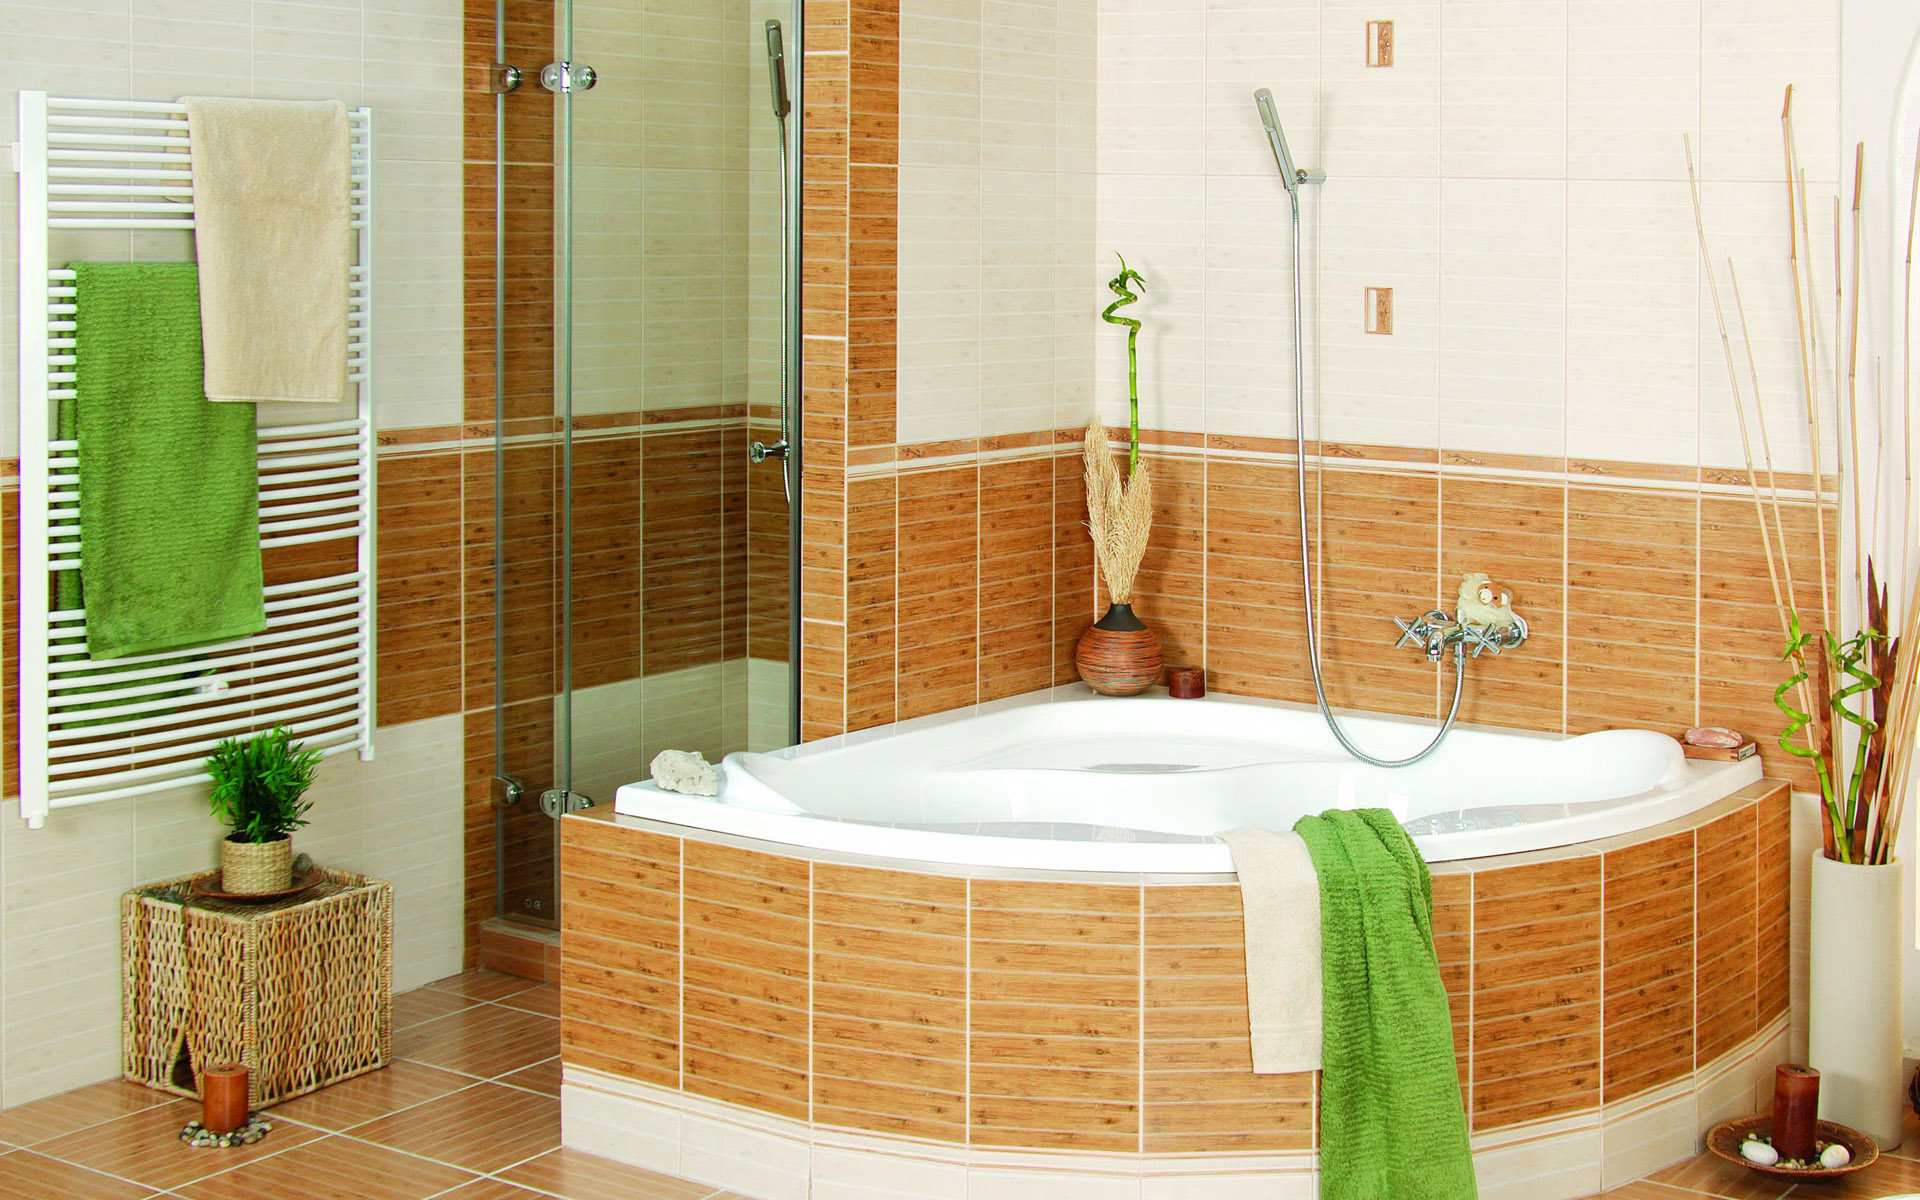 sprightly-modern-bathroom-decoration-shower-brown-earthenware